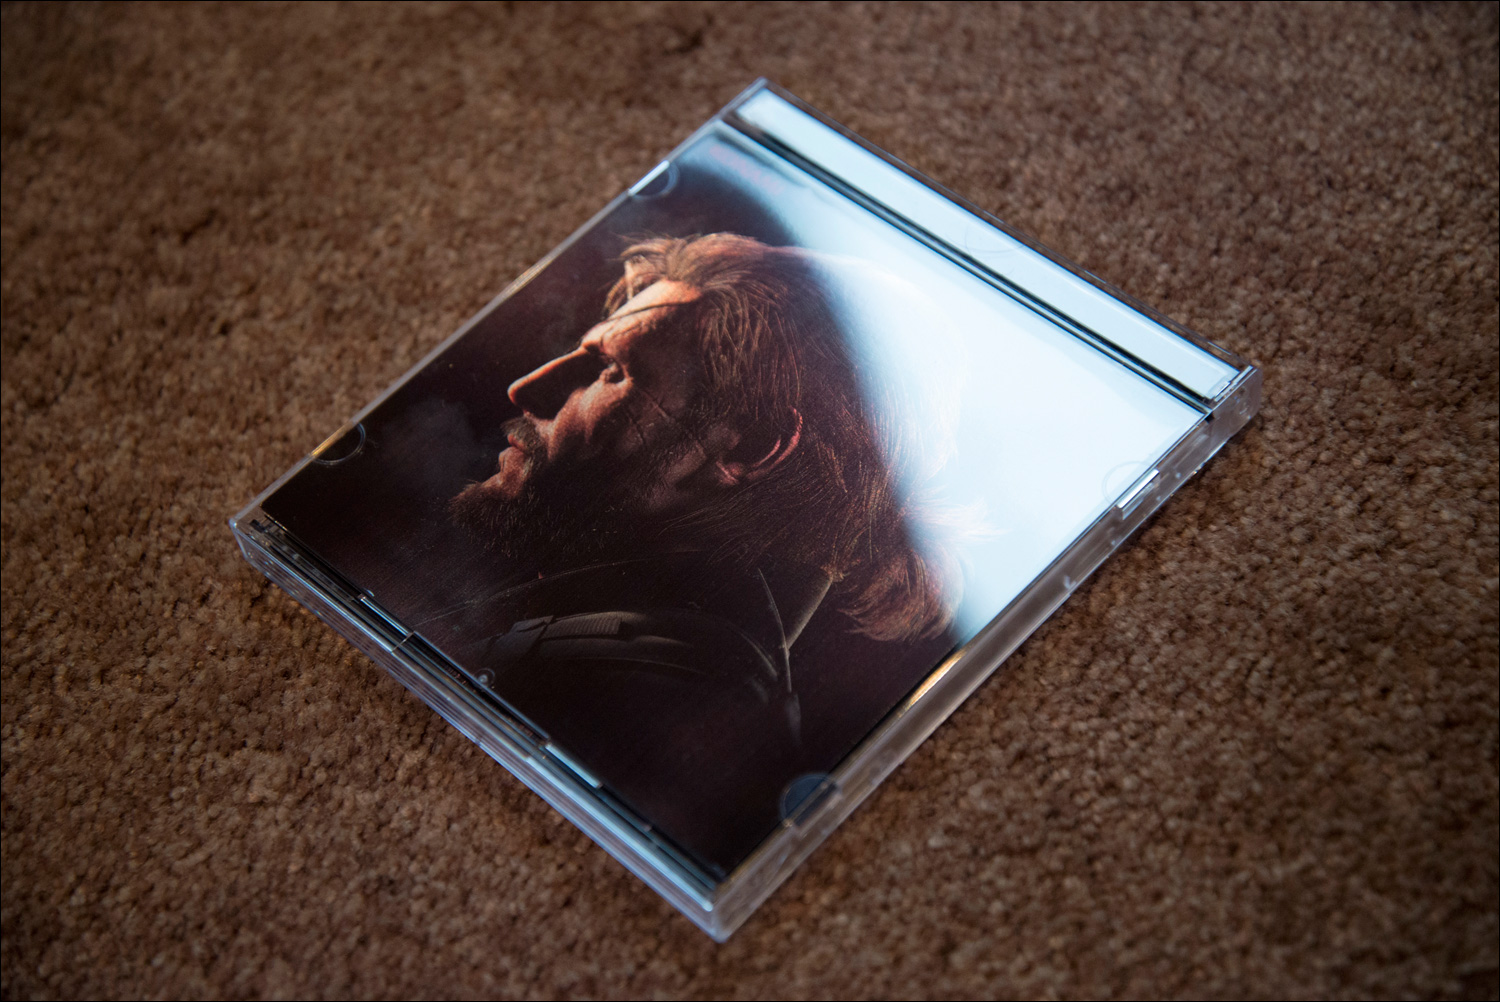 Metal-Gear-Solid-V-Original-Soundtrack-Case